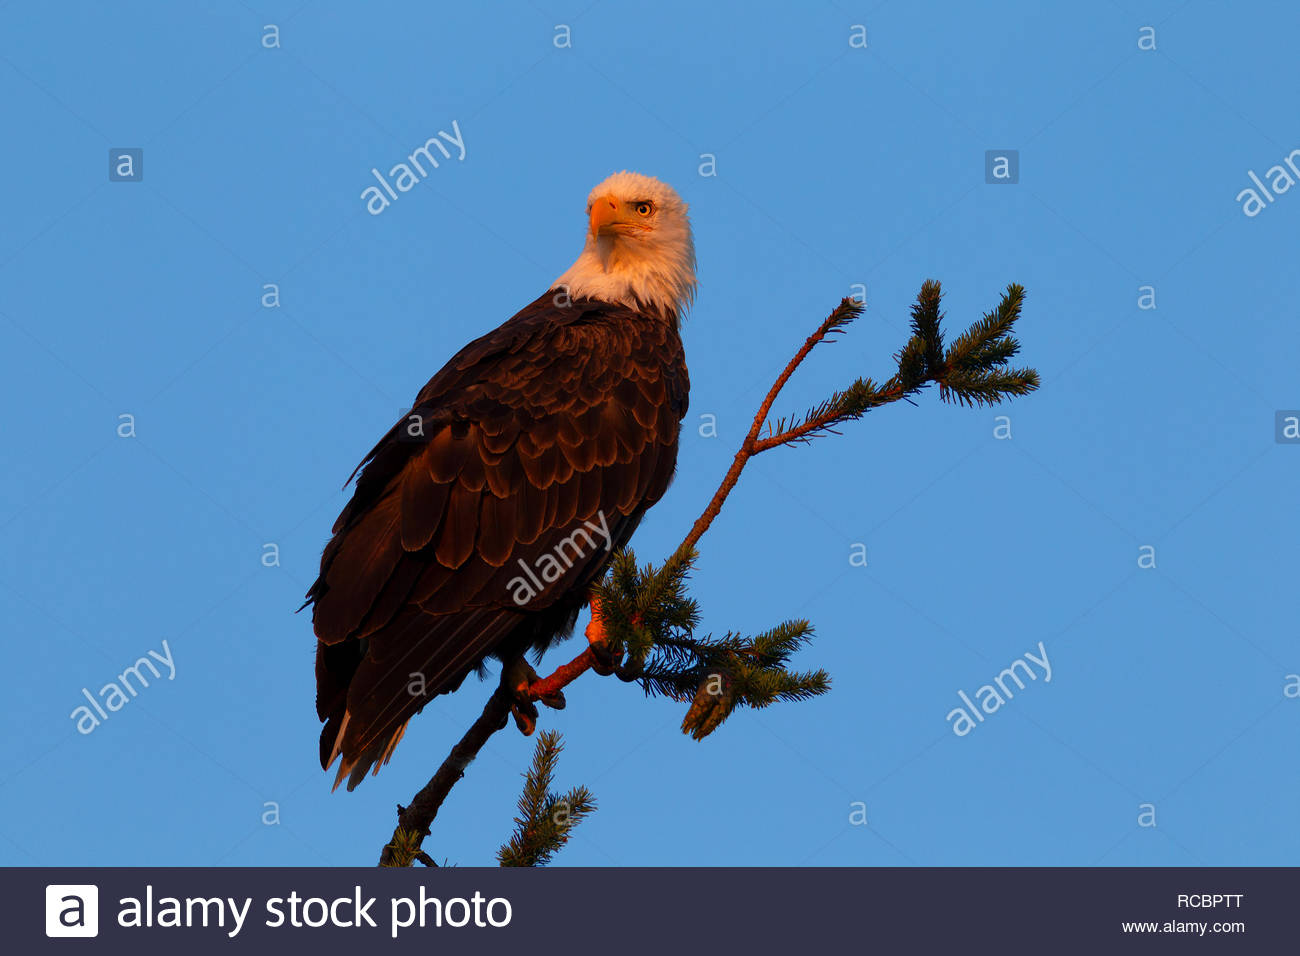 A bald eagle (Haliaeetus leucocephalus) hunts at sunrise from a perch in a tree in Heritage Park, Kirkland, Washington. - Stock Image